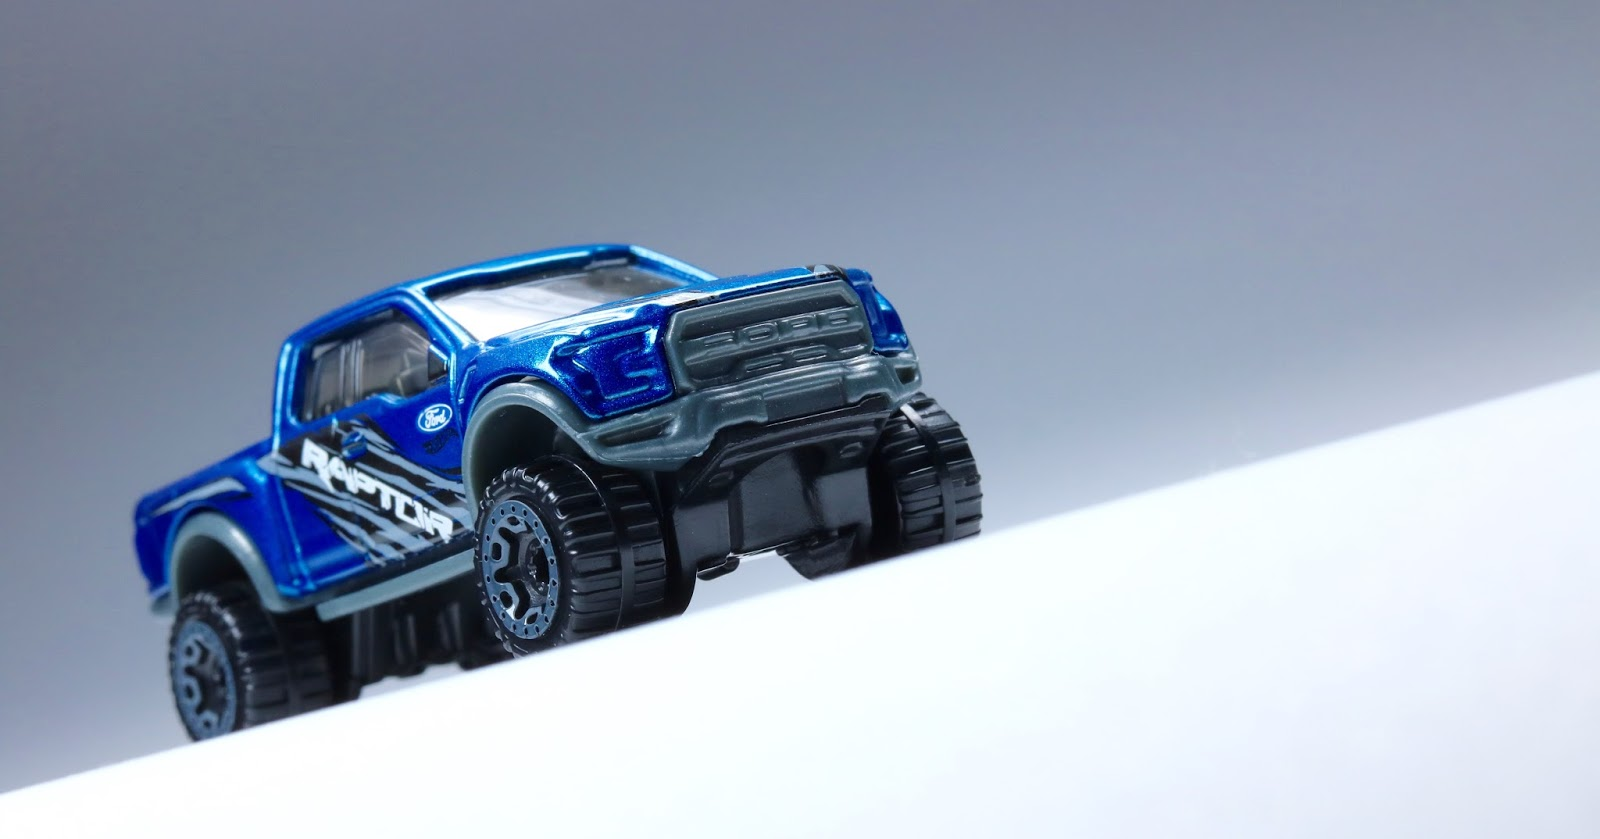 A tale of two the brand new hot wheels 17 ford raptor its a tale of two the brand new hot wheels 17 ford raptor its matchbox counterpart voltagebd Gallery